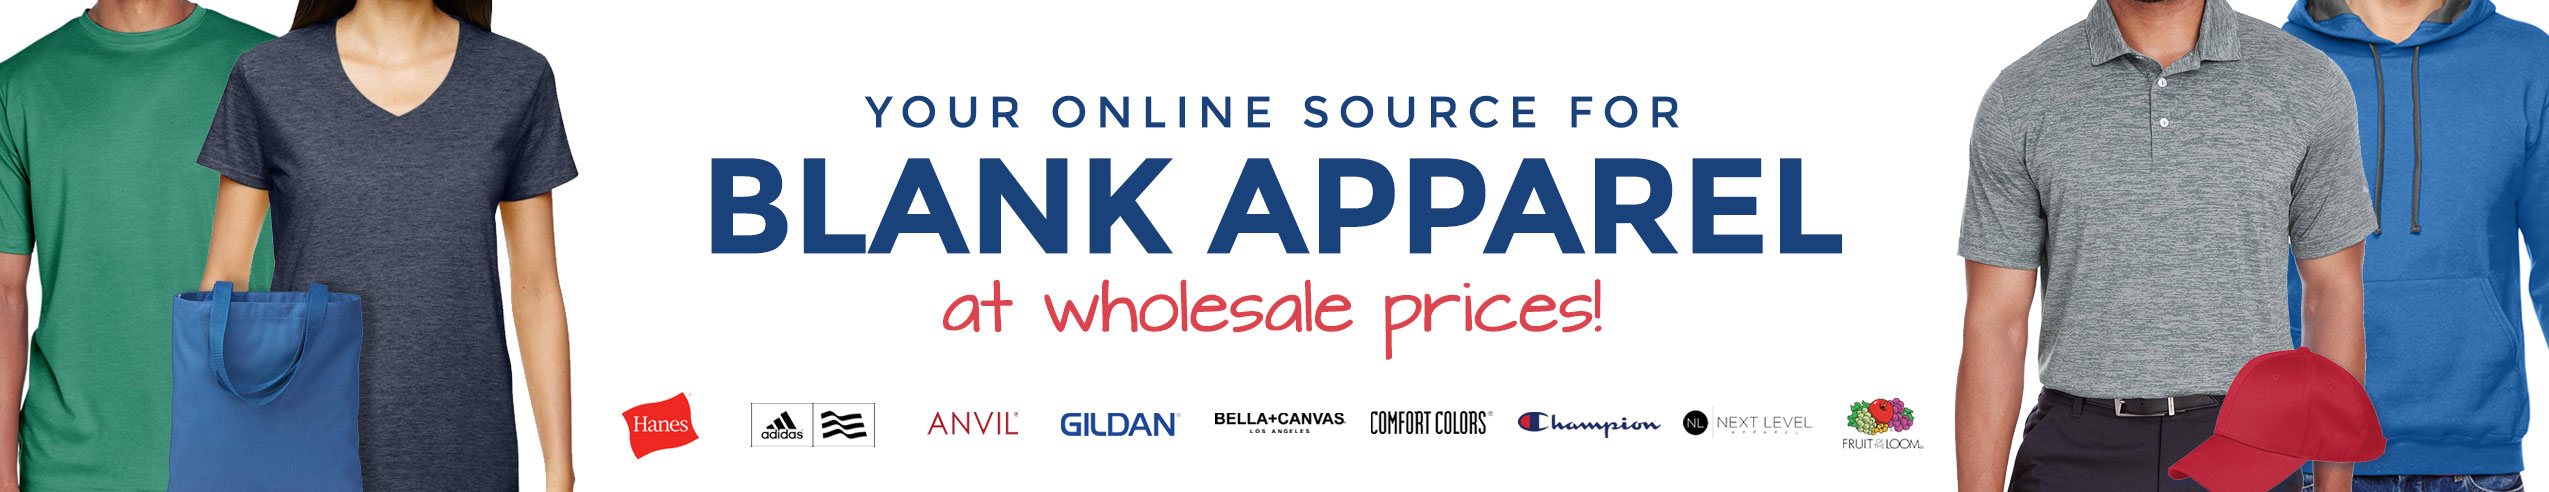 Your online source for blank apparel at wholesale prices!